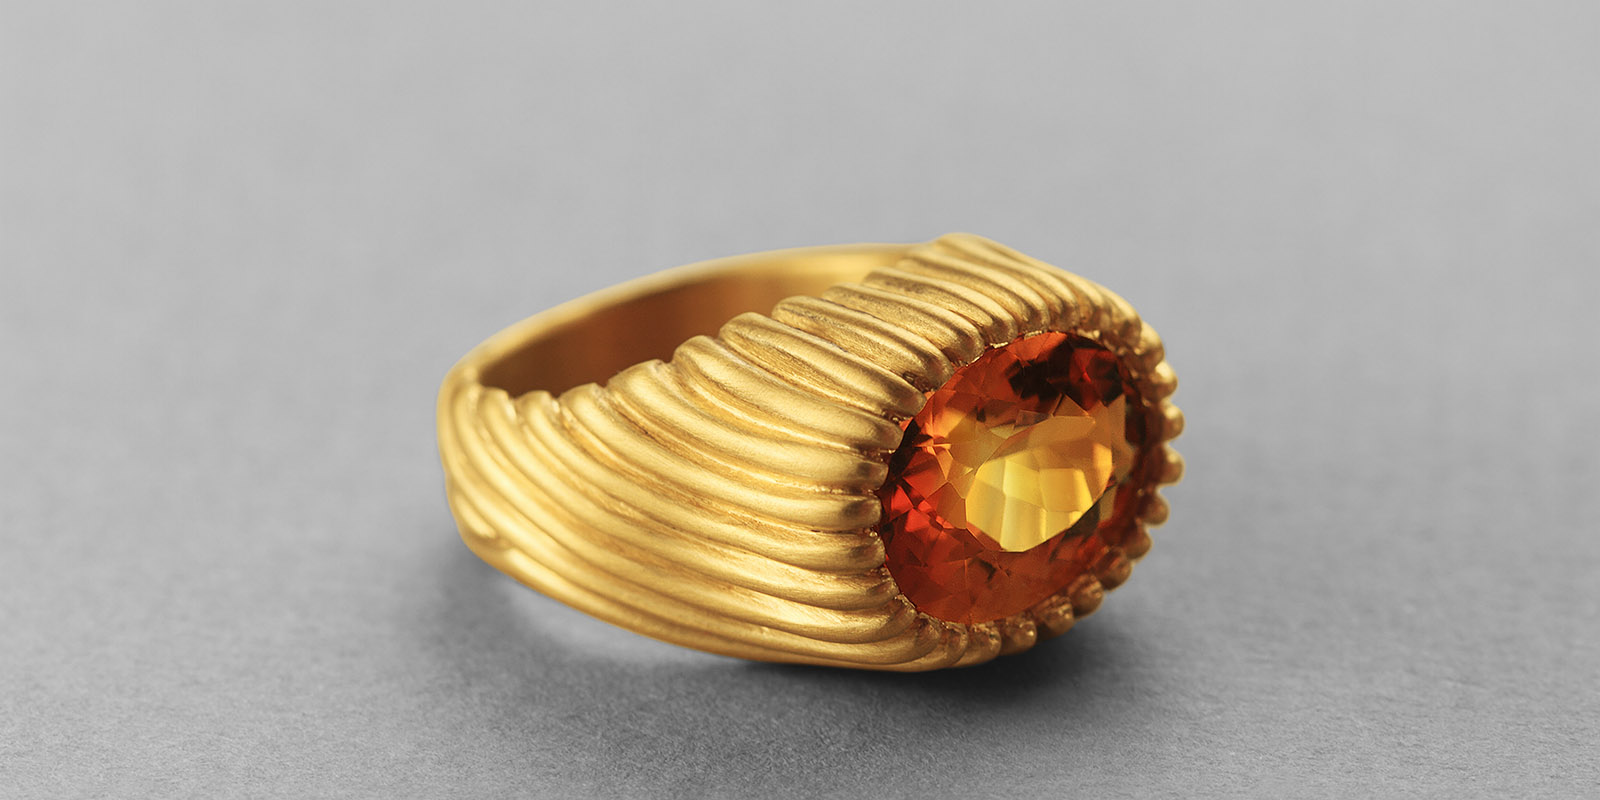 Irene ring. Bicolor citrine and 22 karat gold.